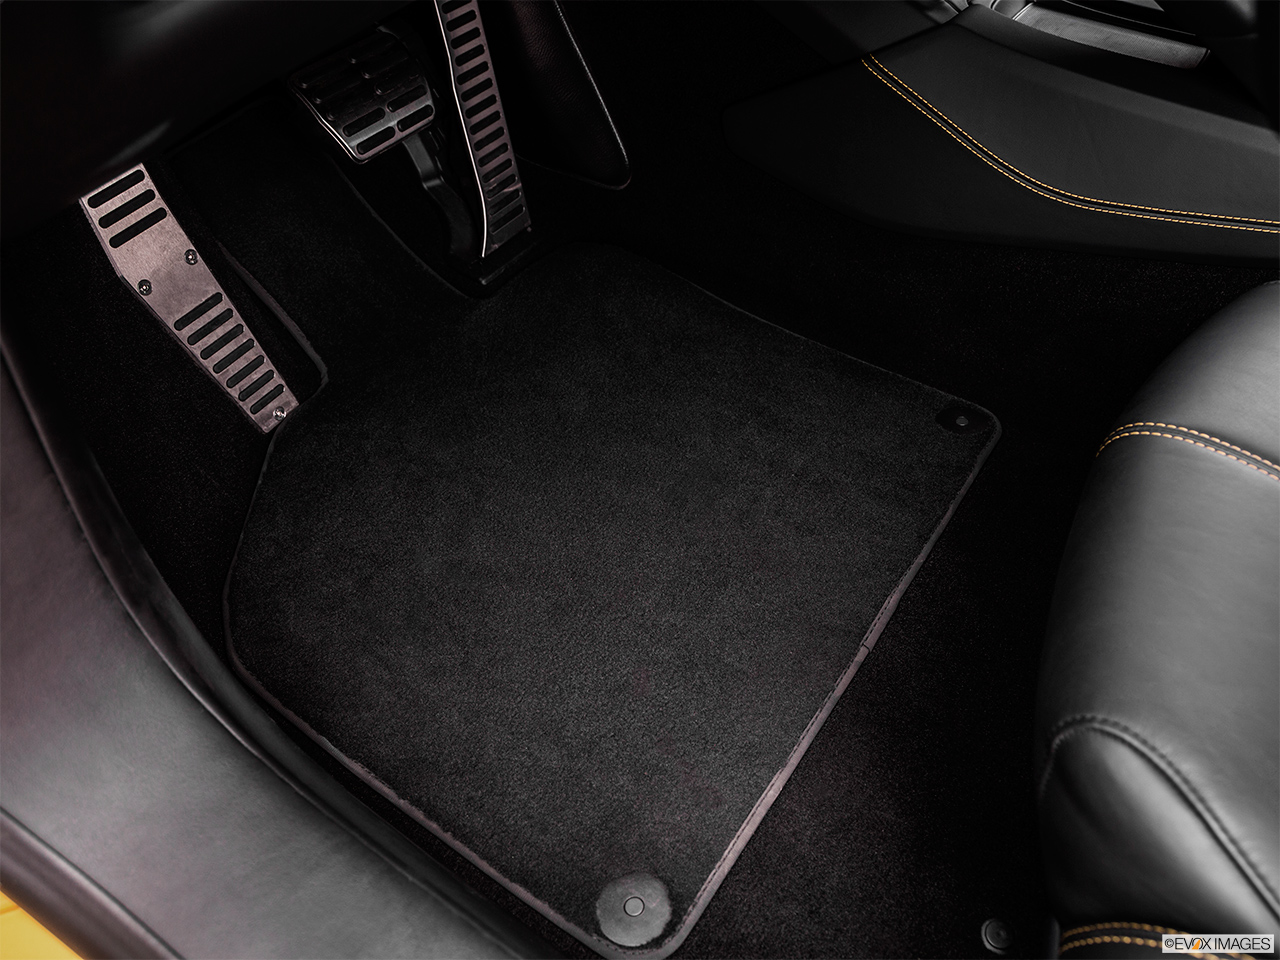 2015 Lamborghini Huracan LP 610-4 Driver's floor mat and pedals. Mid-seat level from outside looking in.